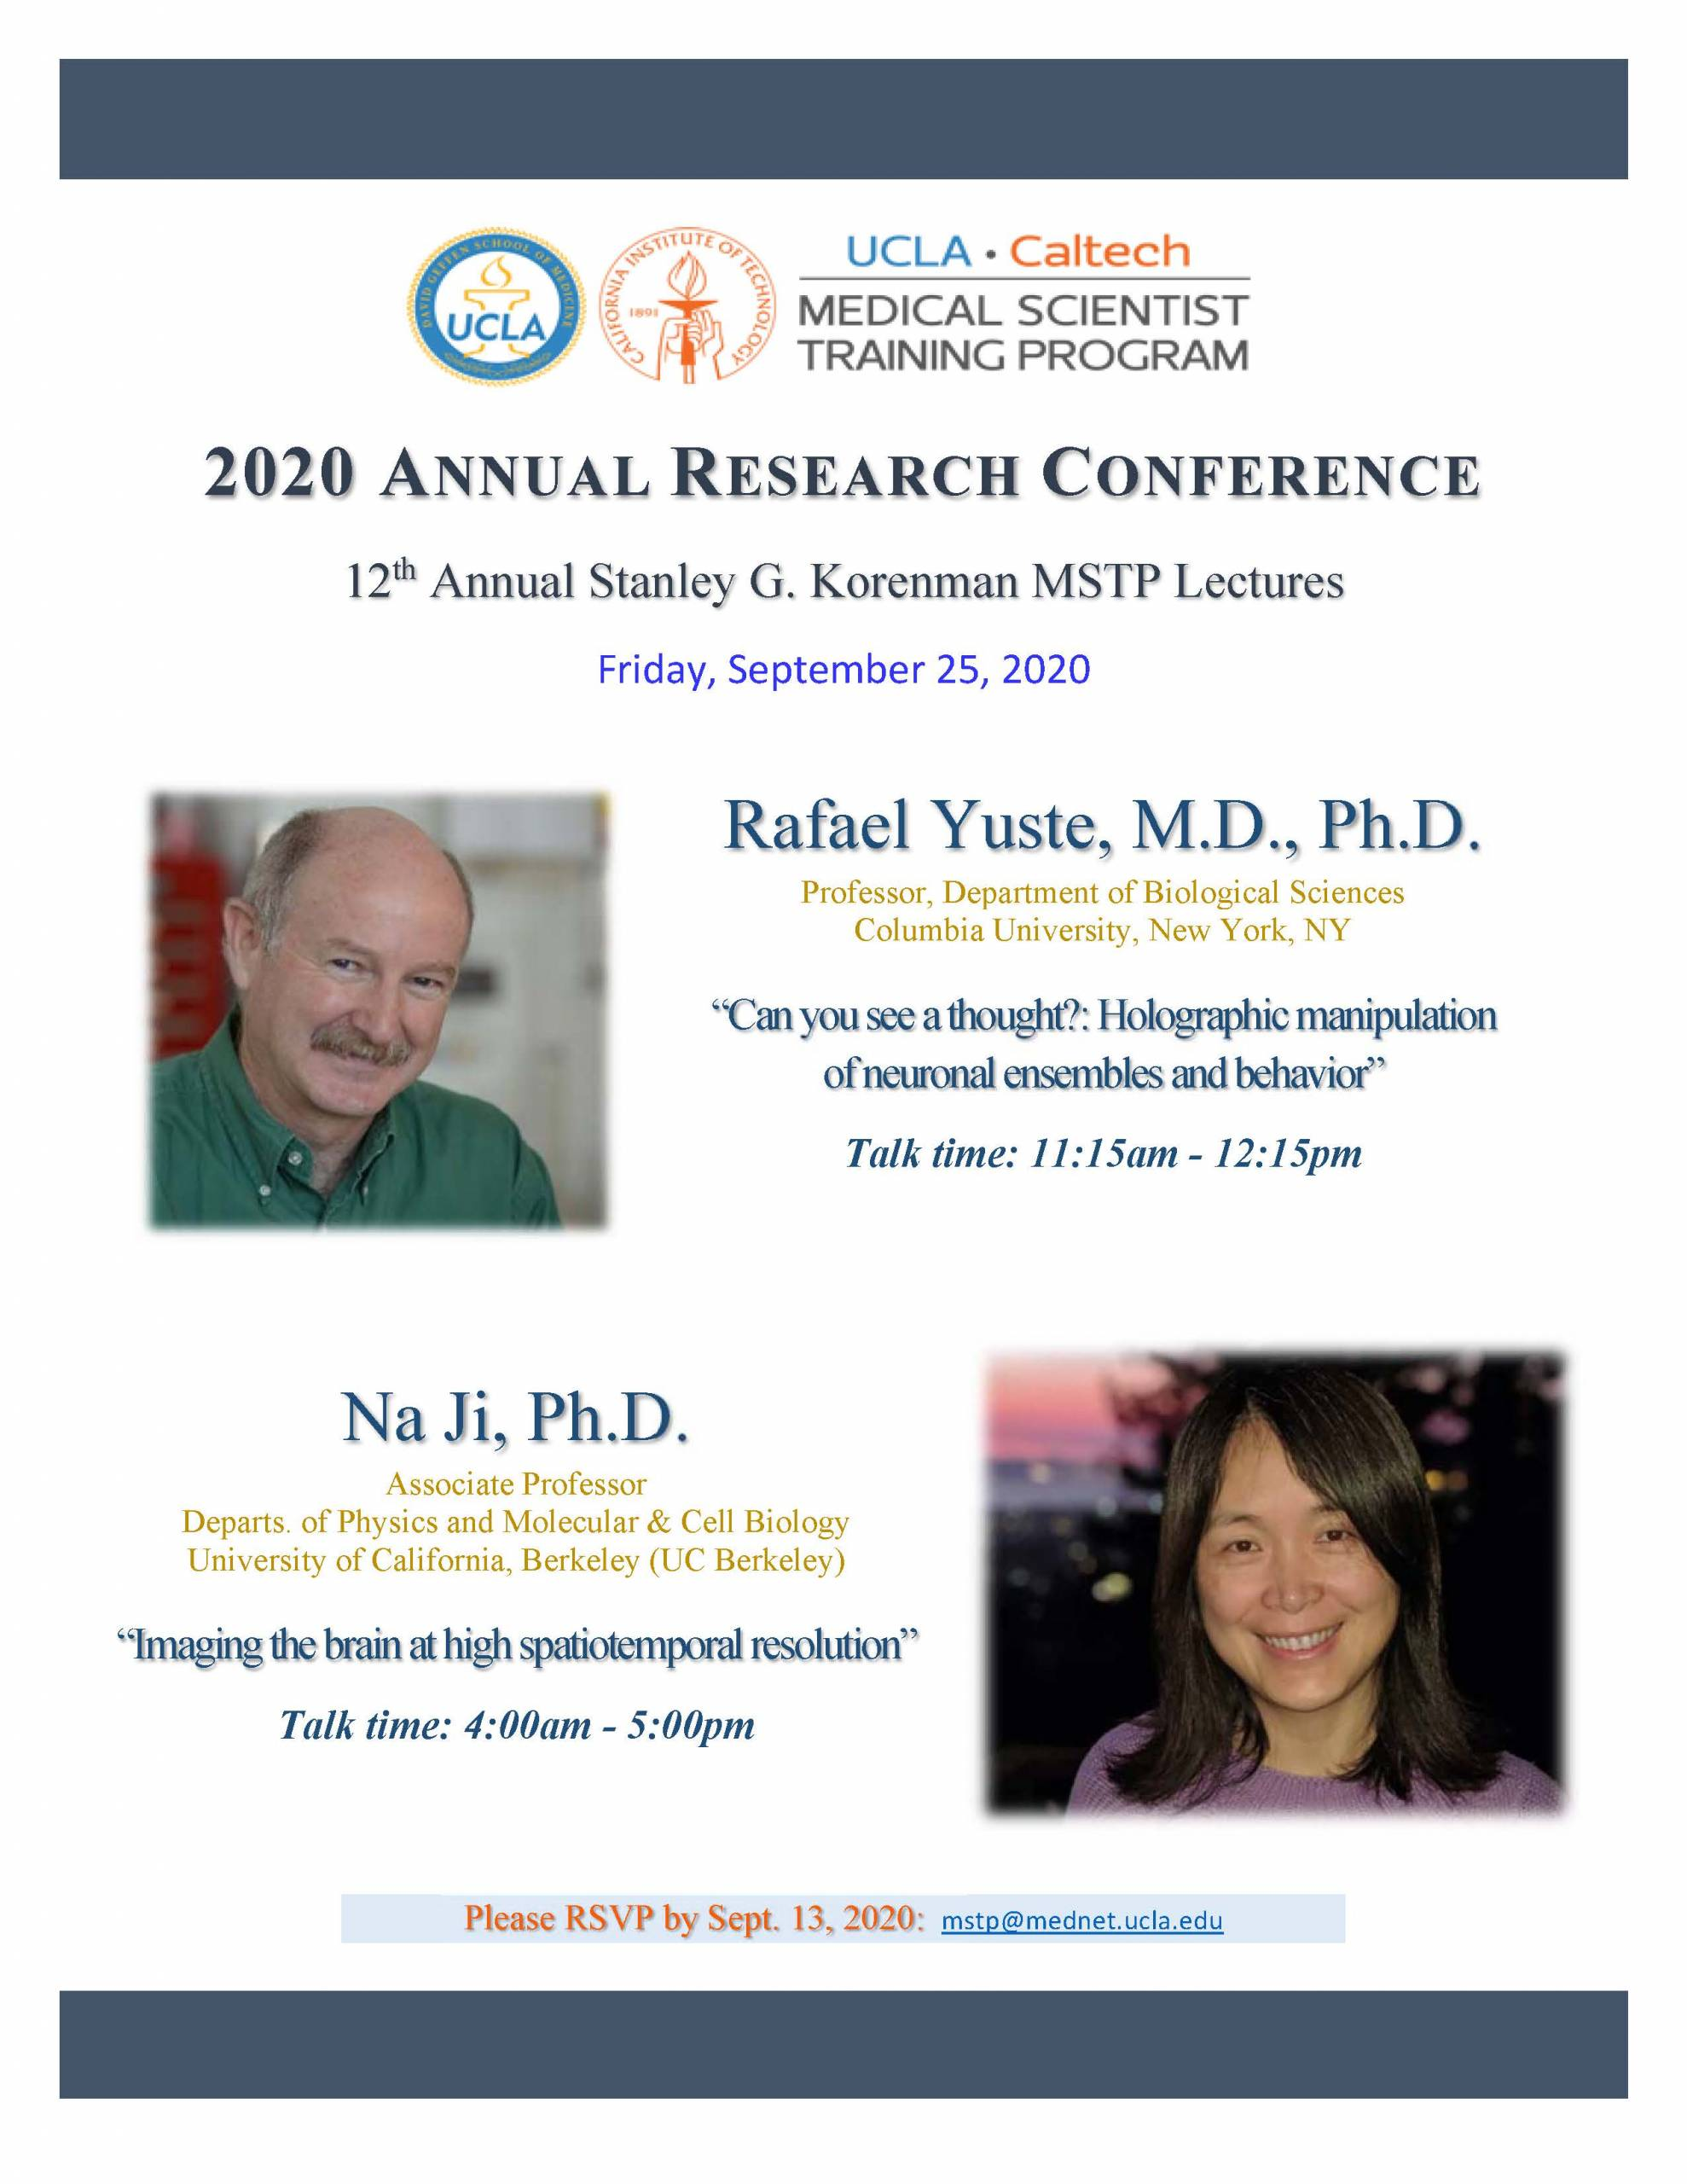 2020 Annual Research Conference Keynote Speakers